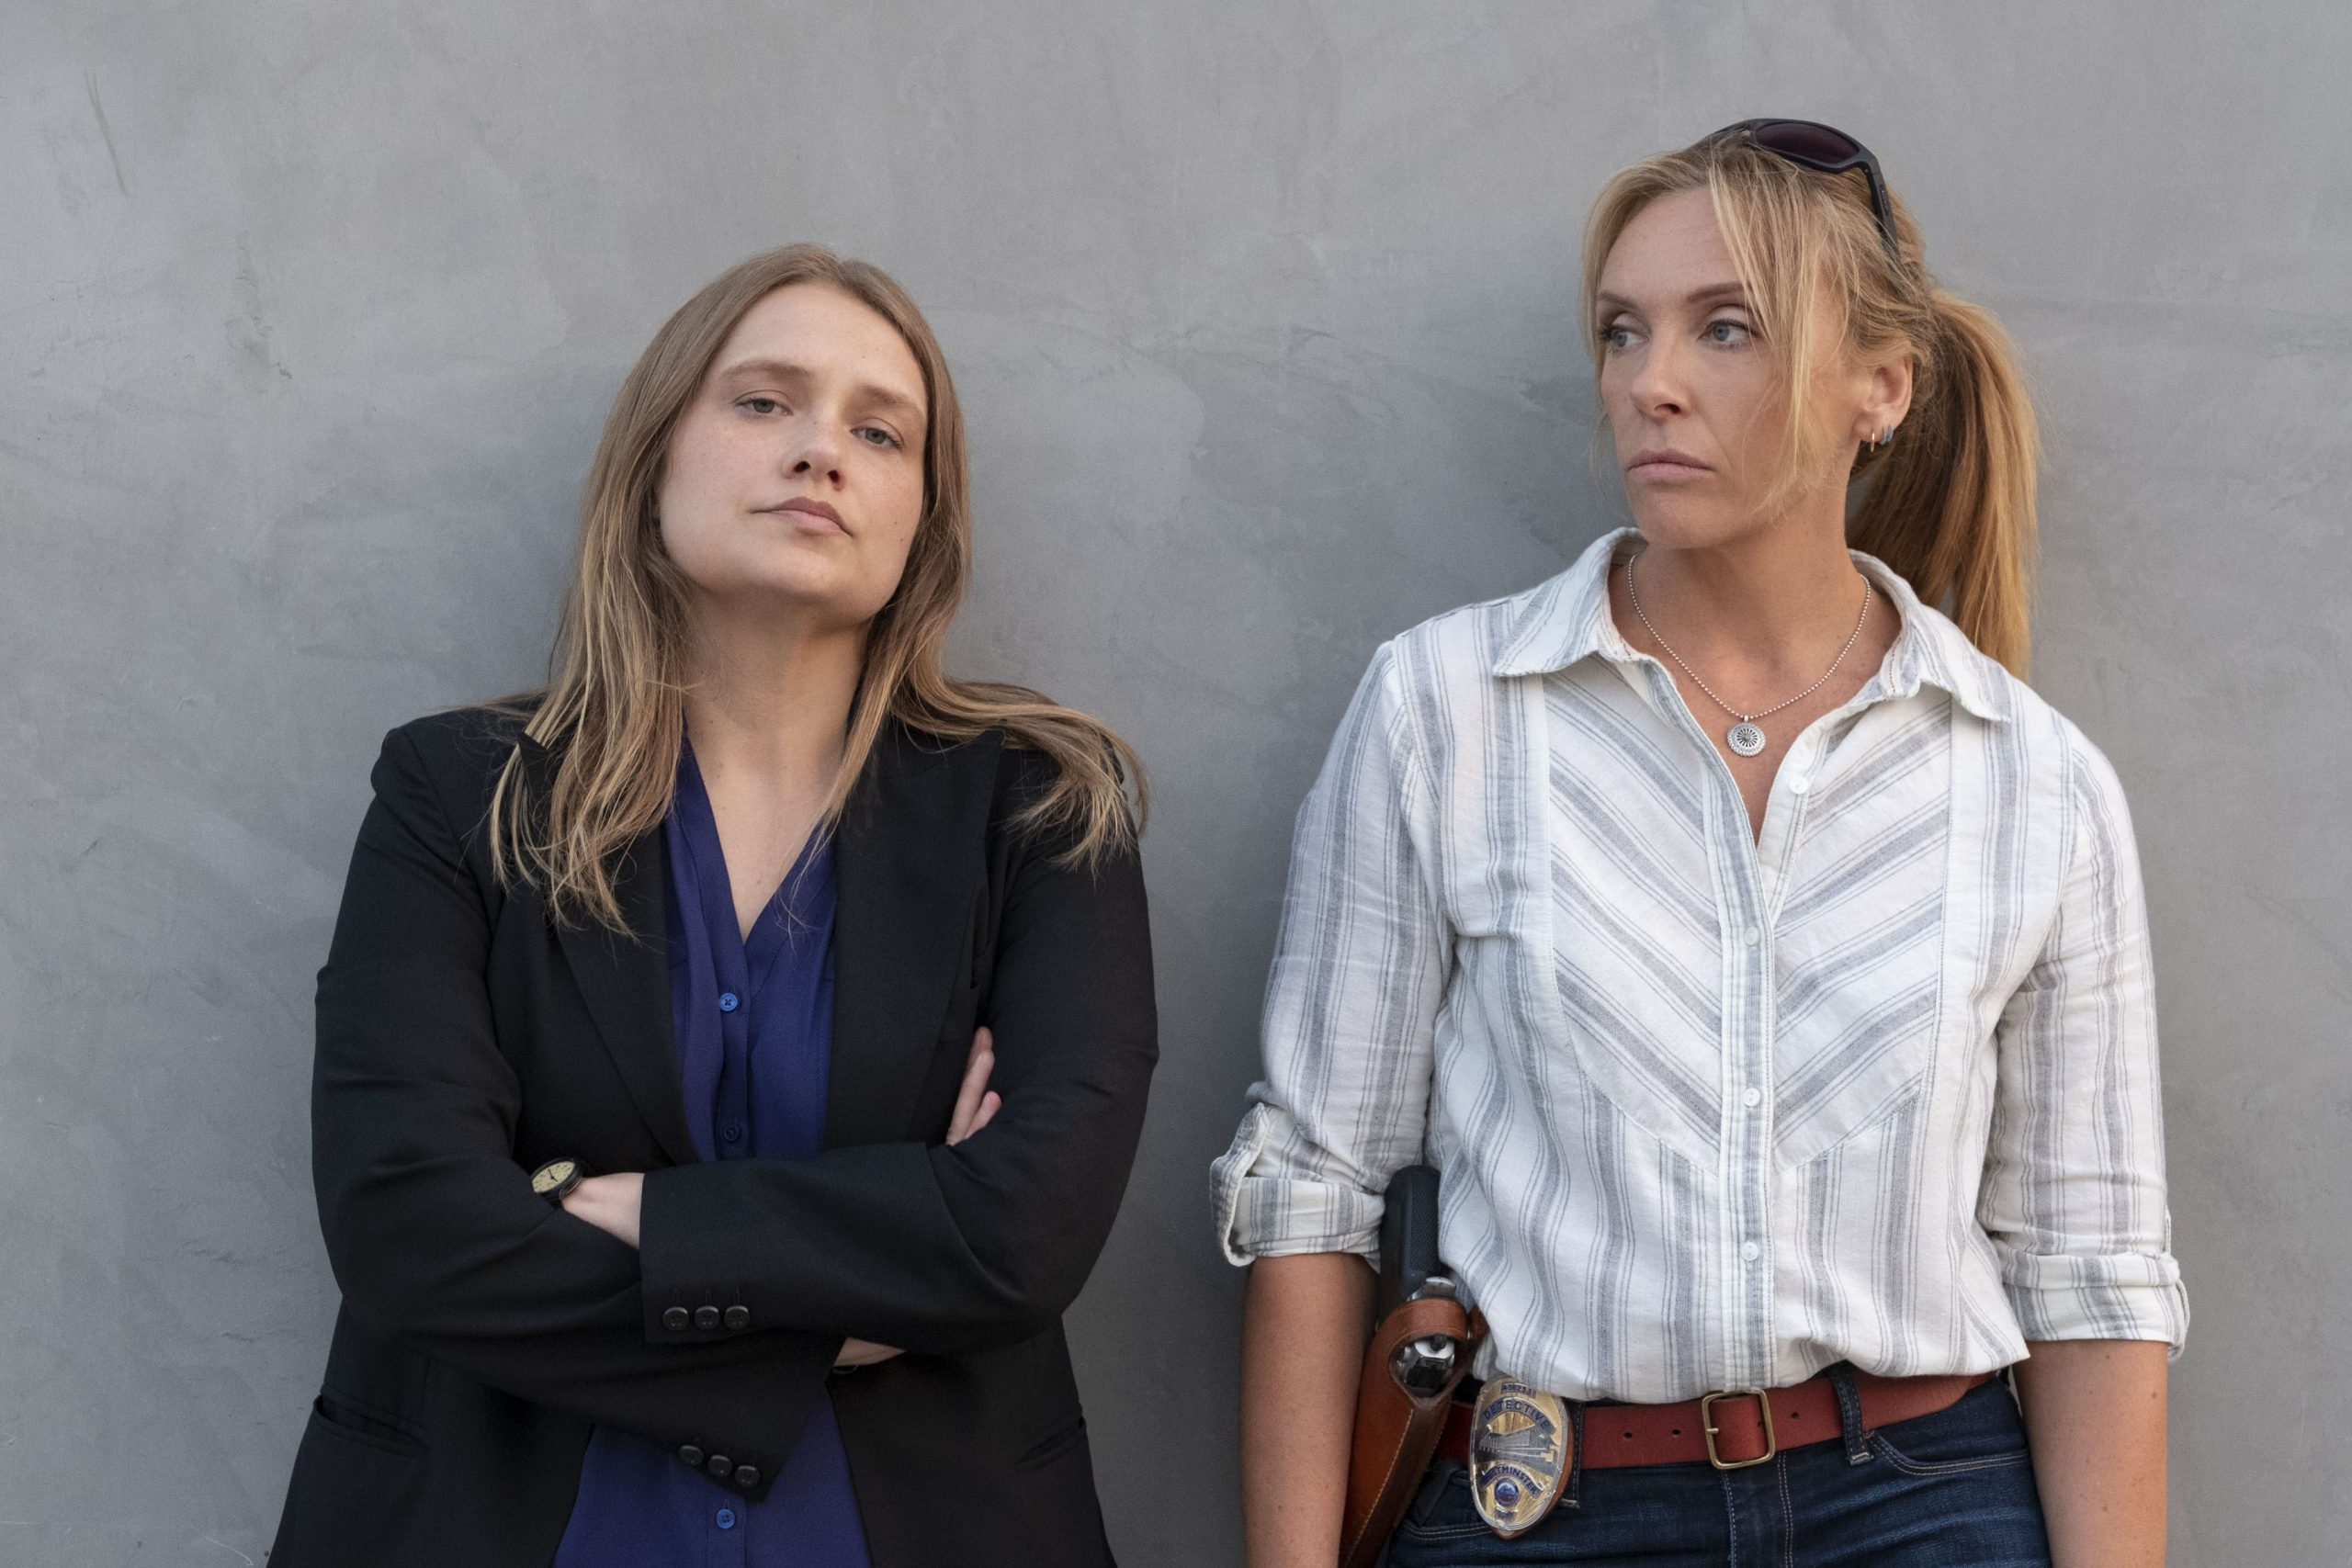 Merritt Wever and Toni Collette leaning against a wall as their characters Detective Karen Duvall and Detective Grace Rasmussen from the Netflix show 'Unbelievable'.